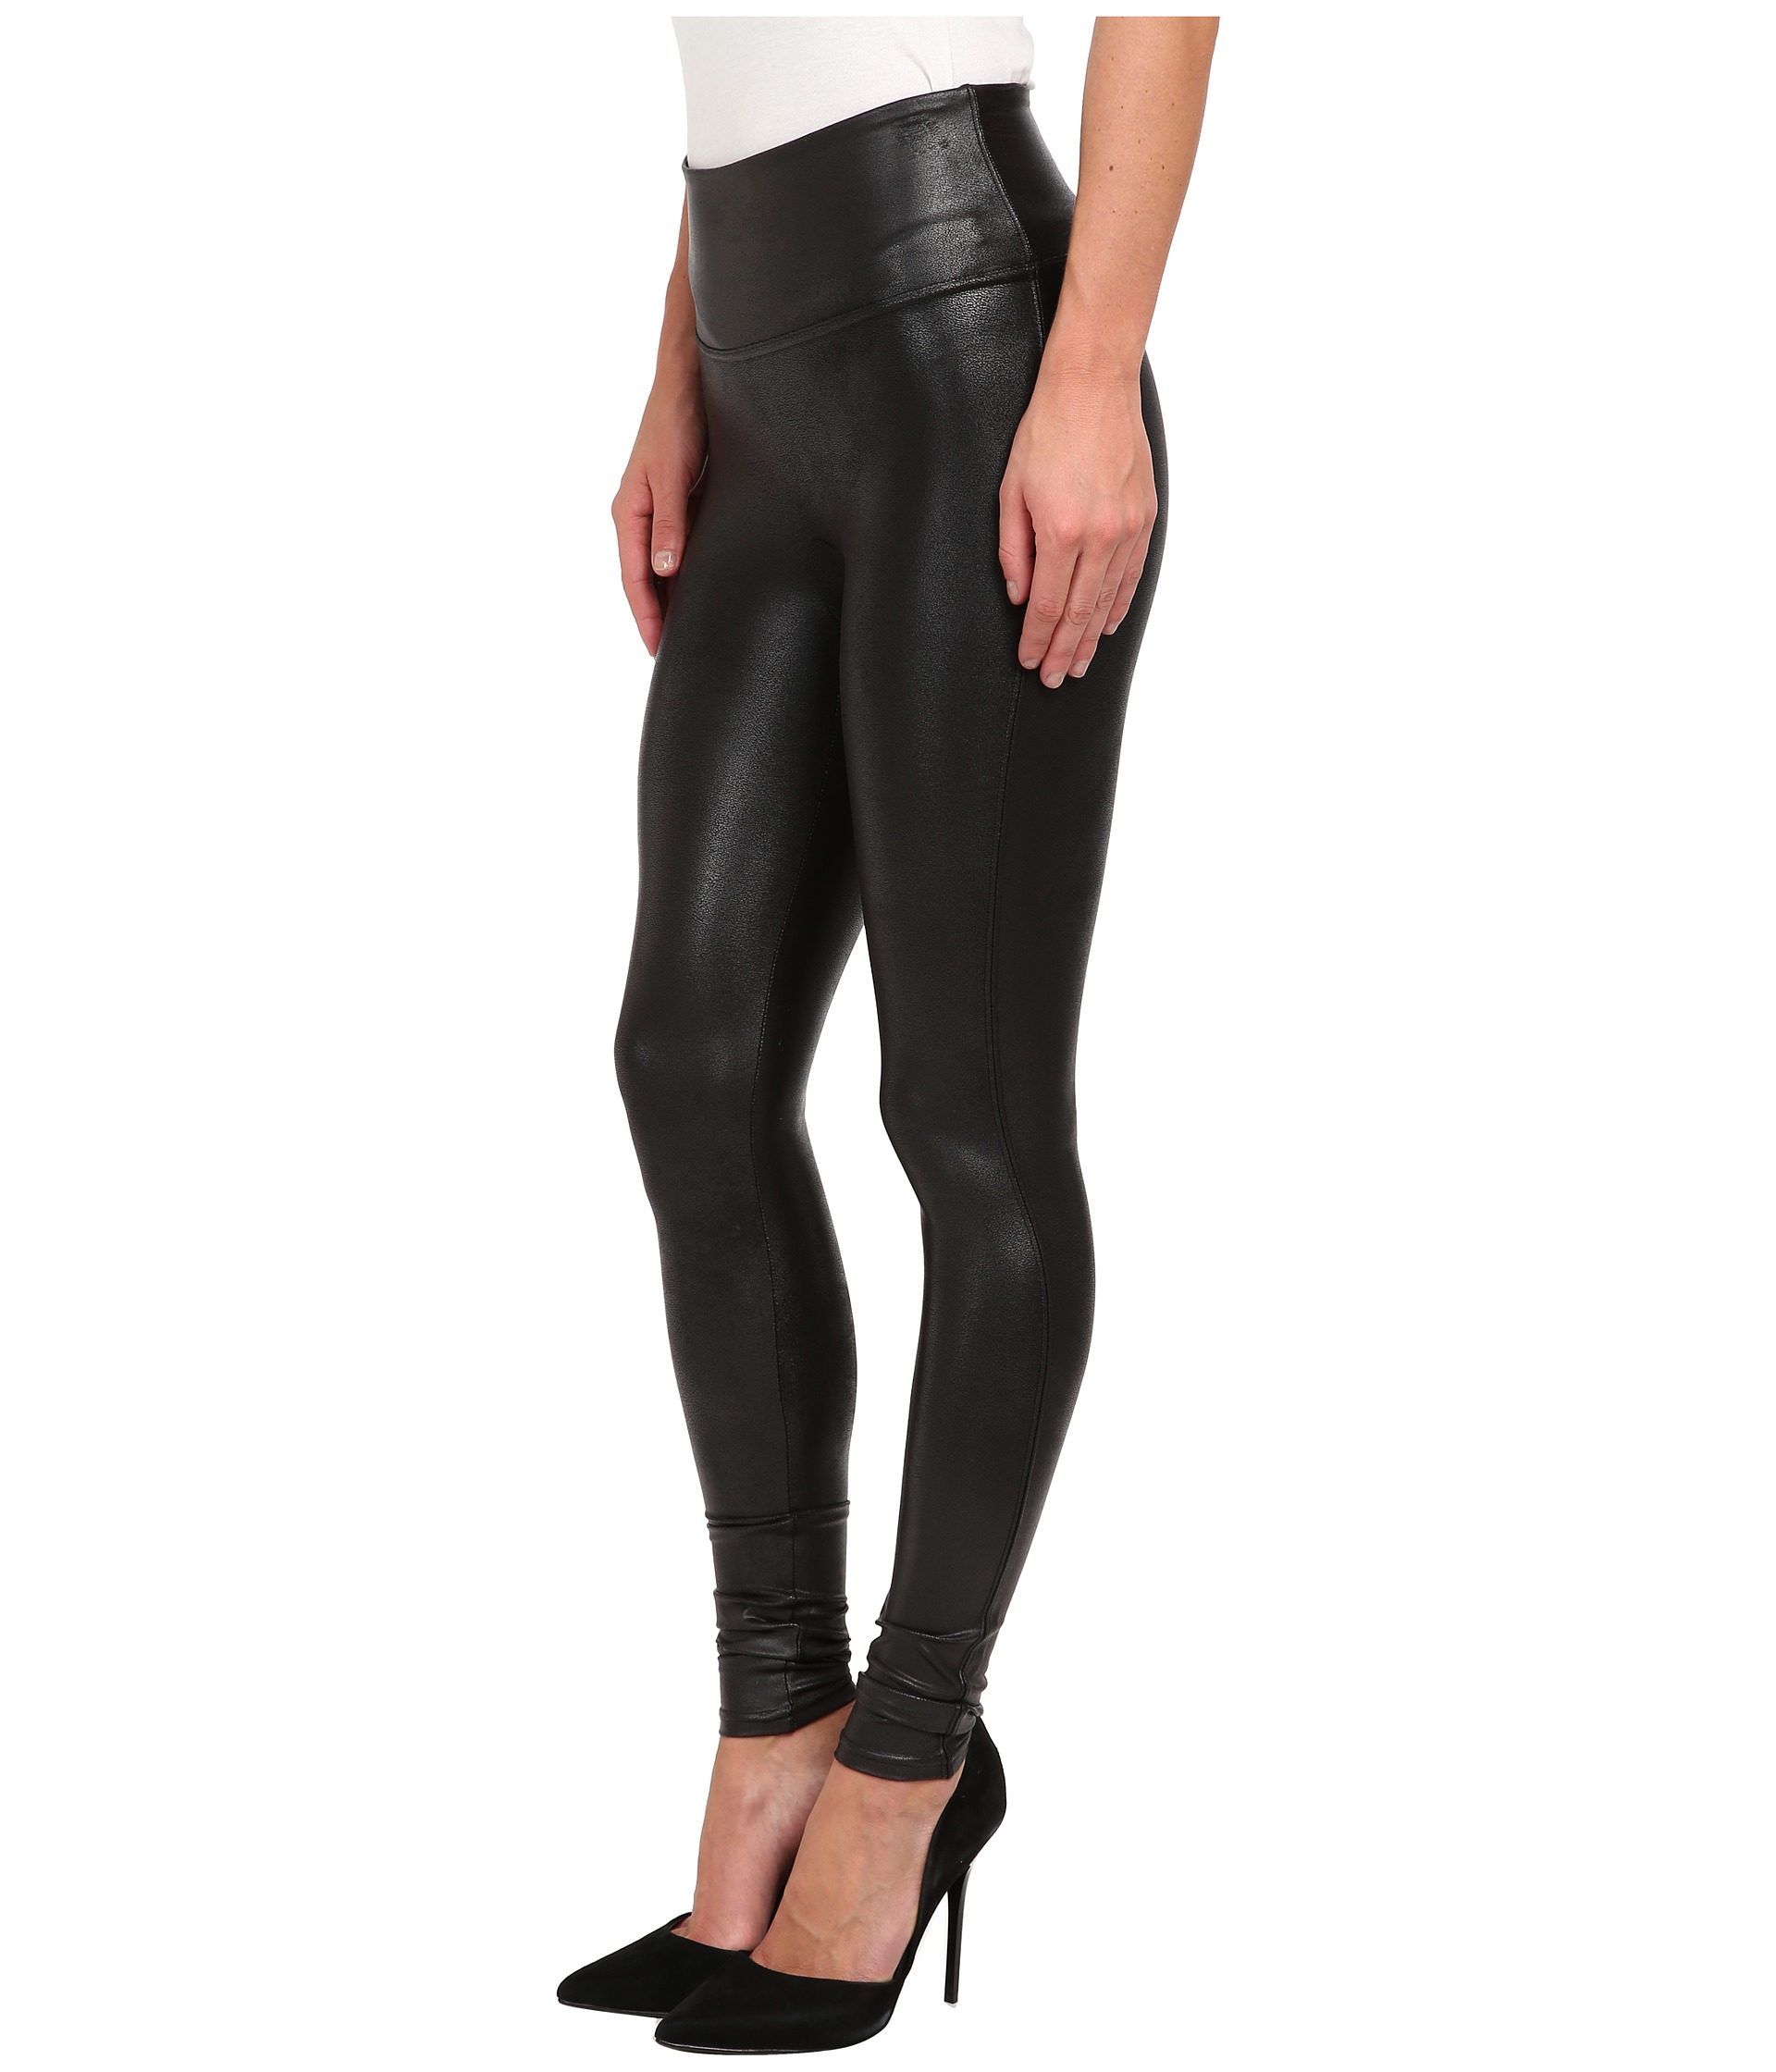 d3fb3bea293 Spanx Ready-to-wow!™ Faux Leather Leggings in Black